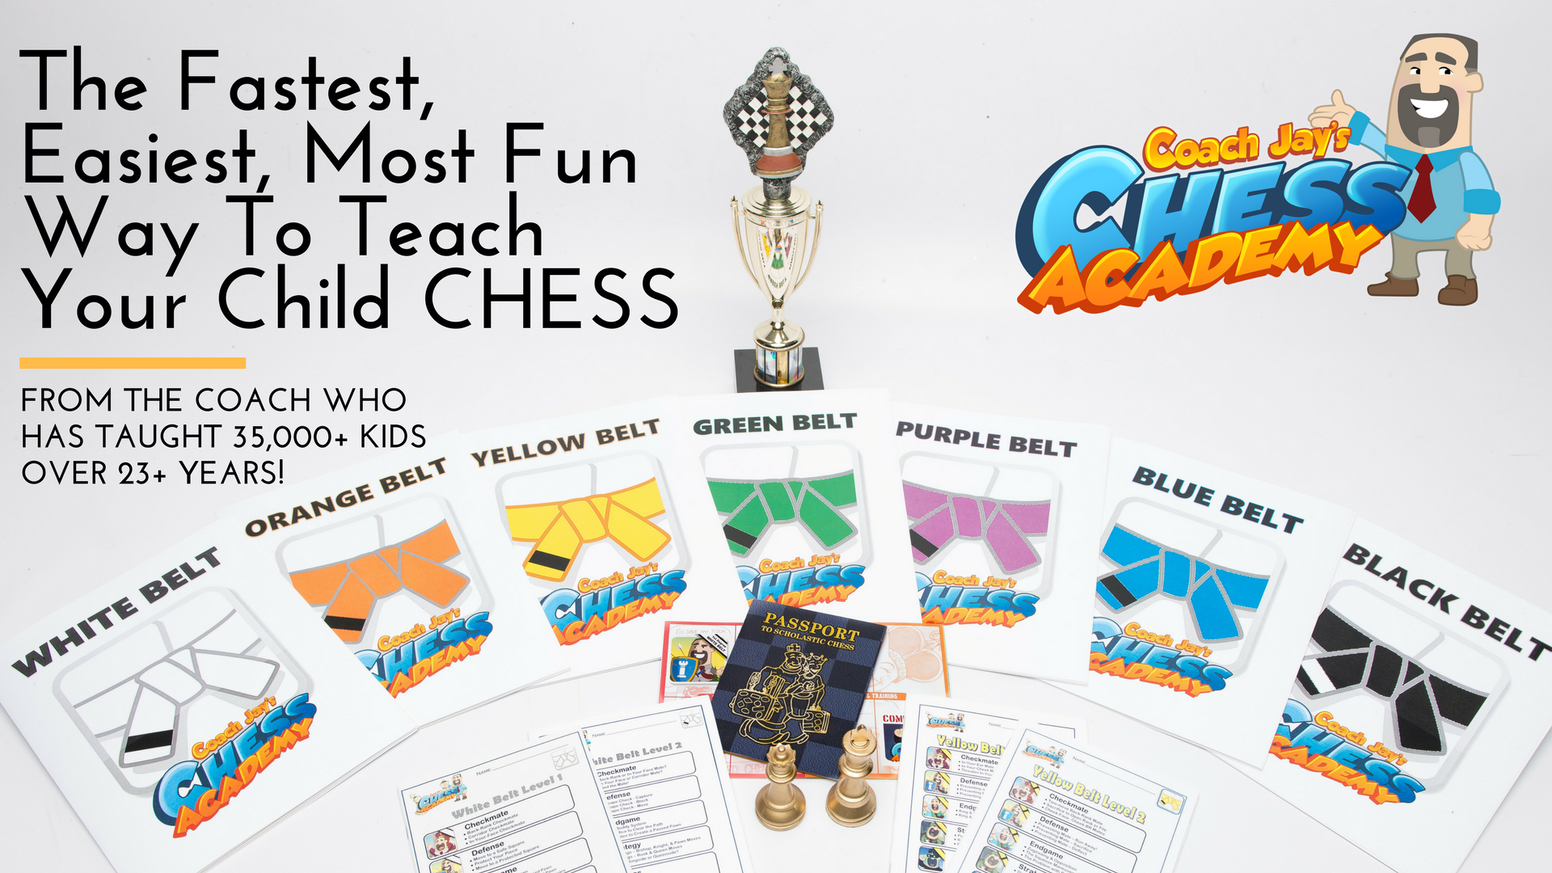 Coach Jays Chess Academy The Fastest Easiest Way To Learn By Four Move Checkmate Diagram